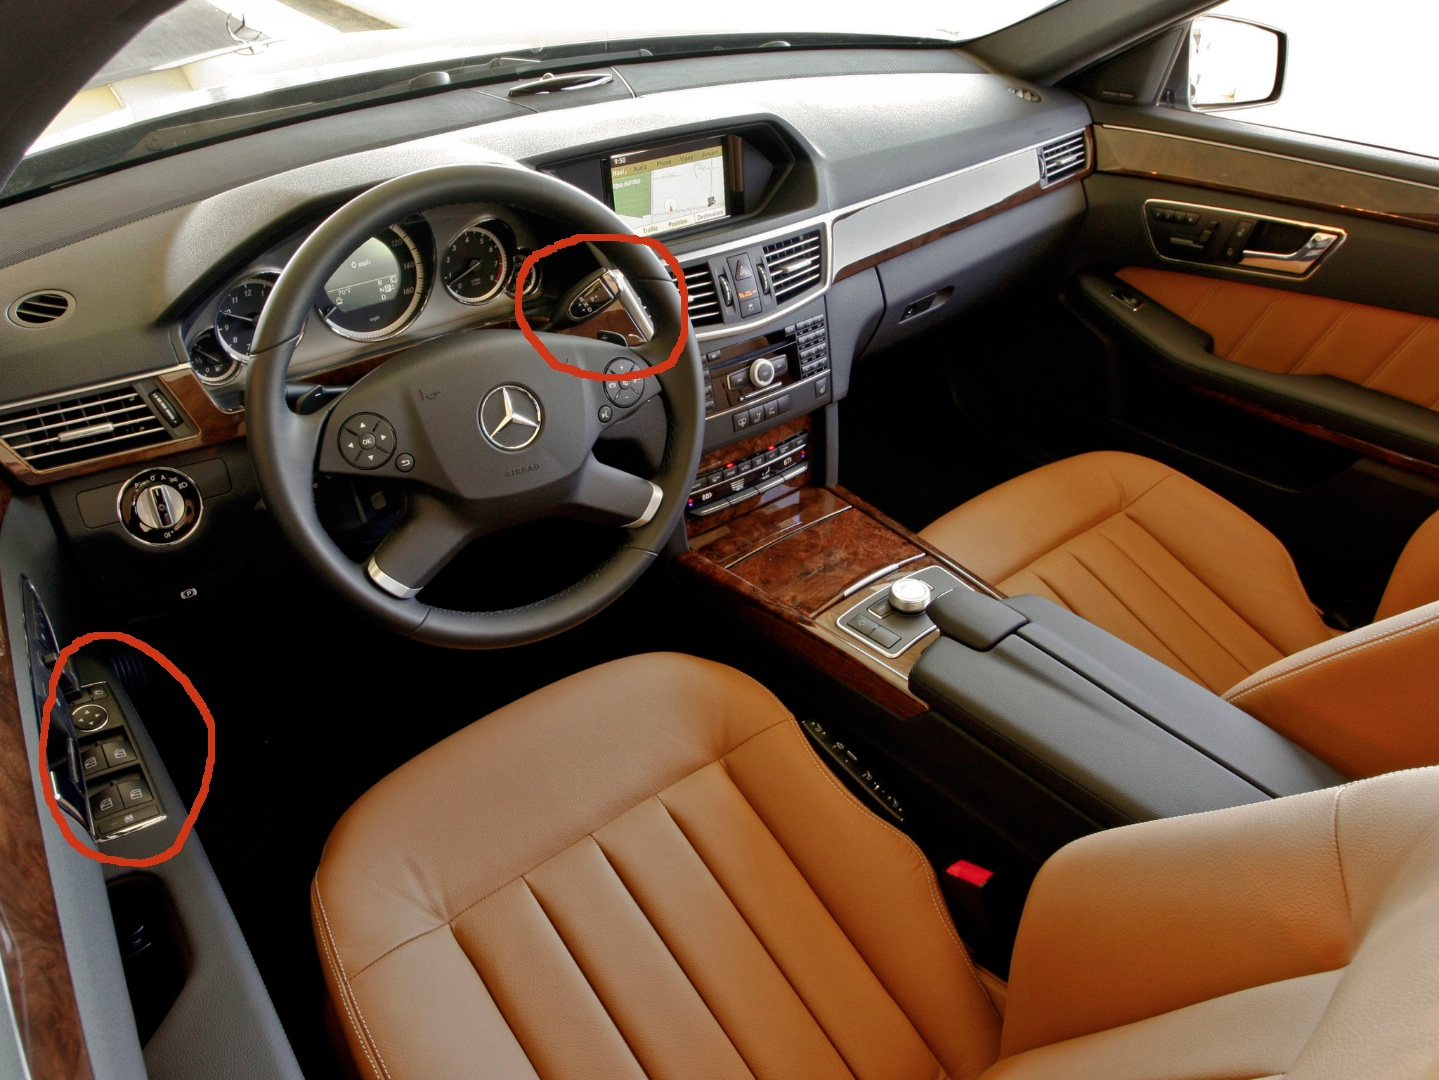 Tesla Model S Interior Mercedes Benz E Cl W212 Pre Facelift